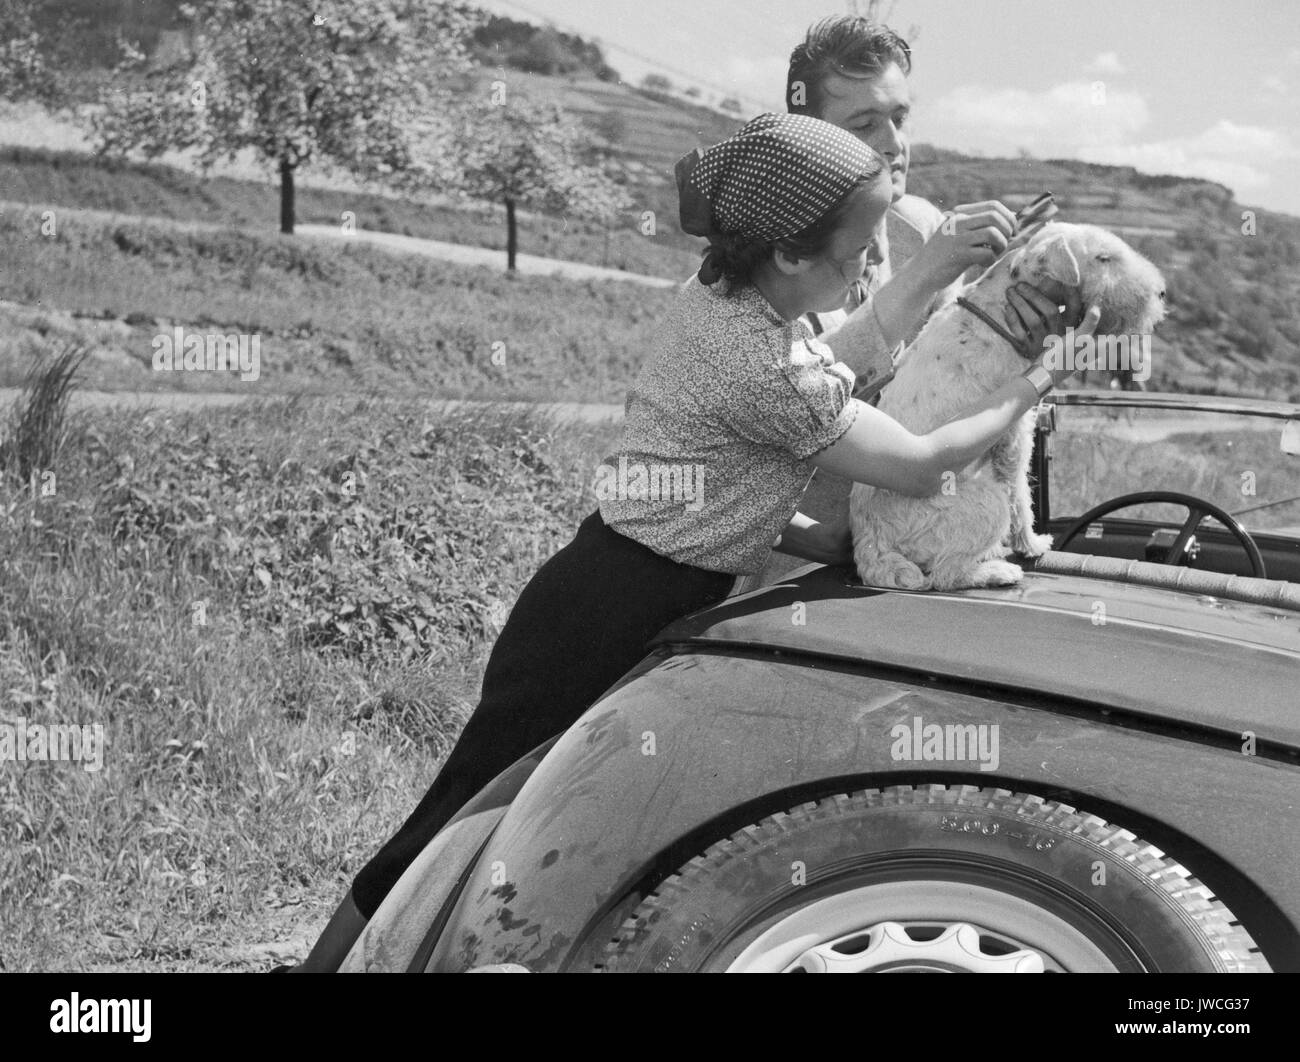 Man and woman grooming dog sitting on parked car. - Stock Image